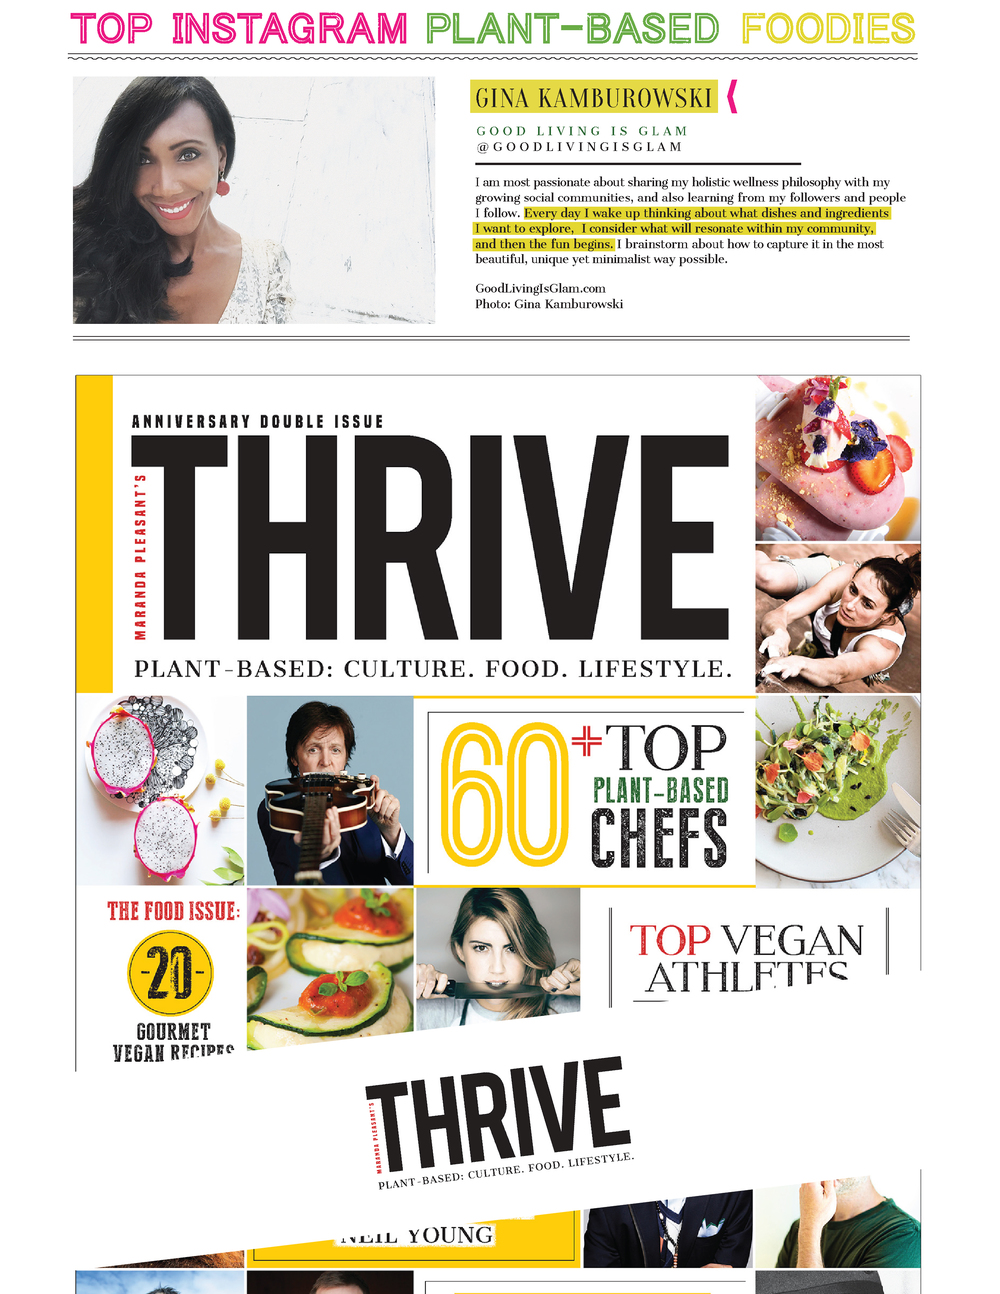 Good Living is Glam Thrive Magazine-01.jpg